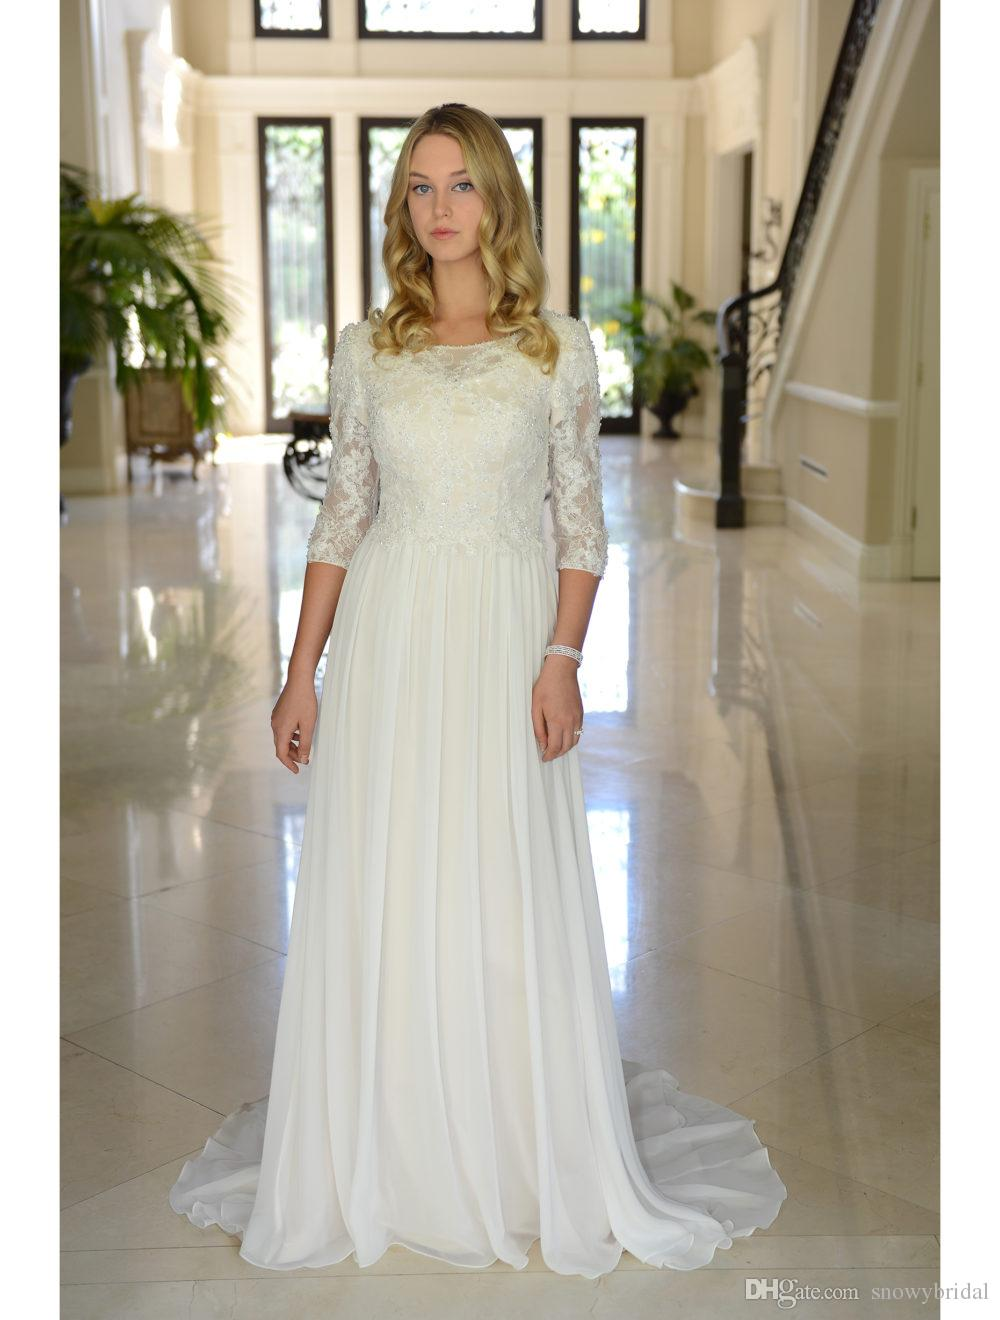 5a883674fd2 ... Chiffon Boho Modest Wedding Dresses With 3 4 Sleeves Beaded Buttons  Lace Country Western Reception. SIZE CHARTS. Dress Size Chart